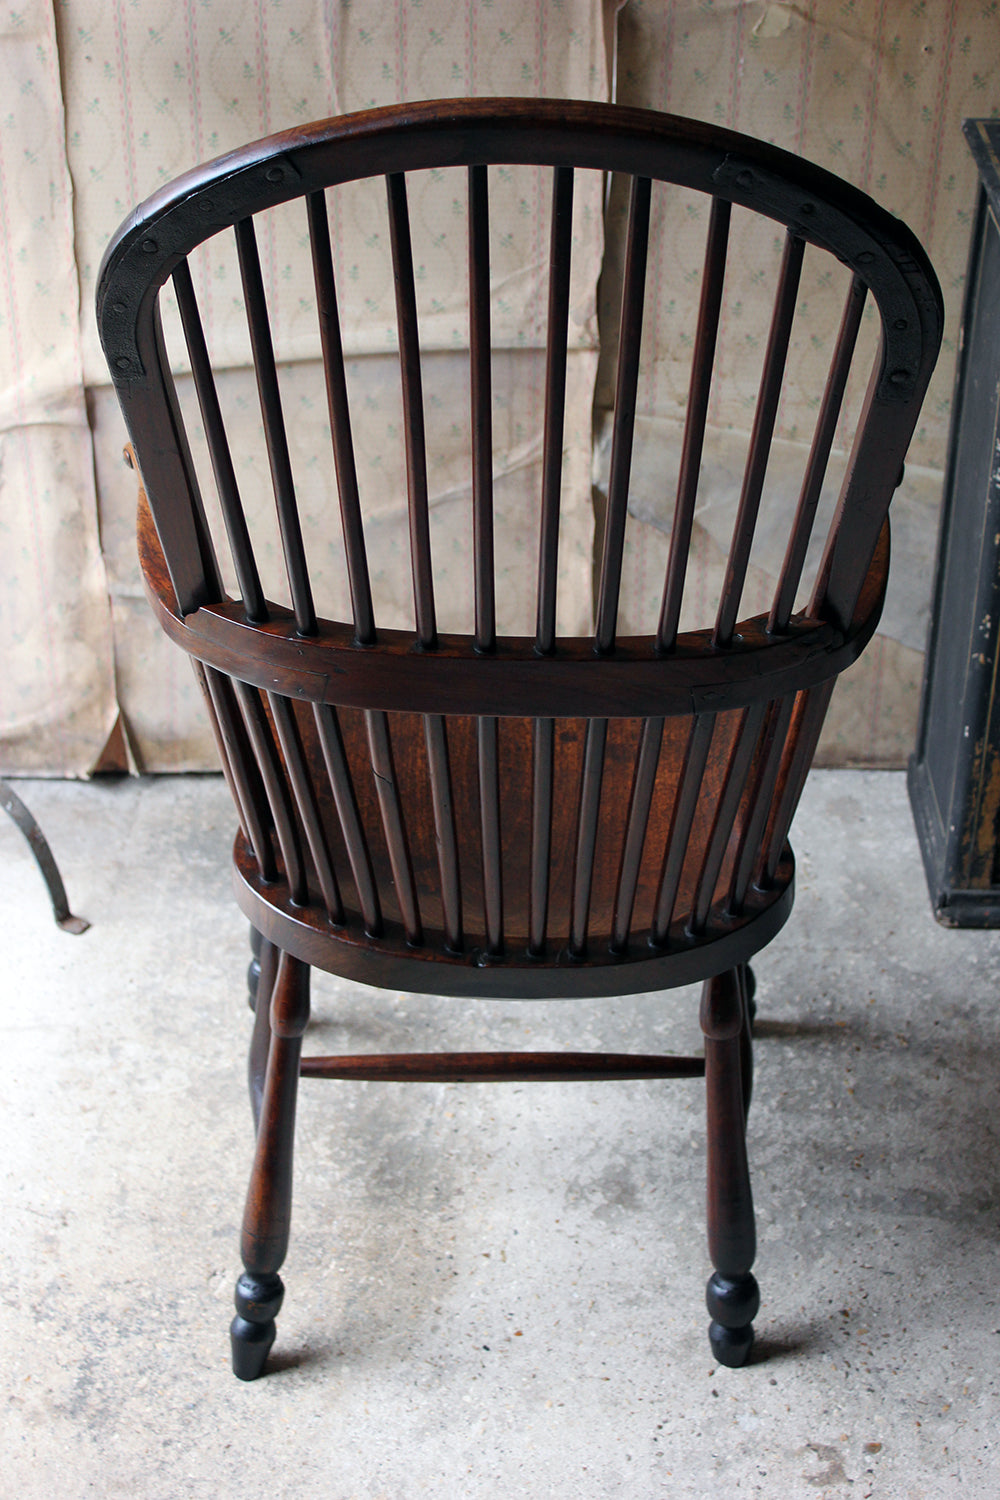 A Rare & Exceptional George III Hoop-Back Walnut Windsor Armchair c.1790